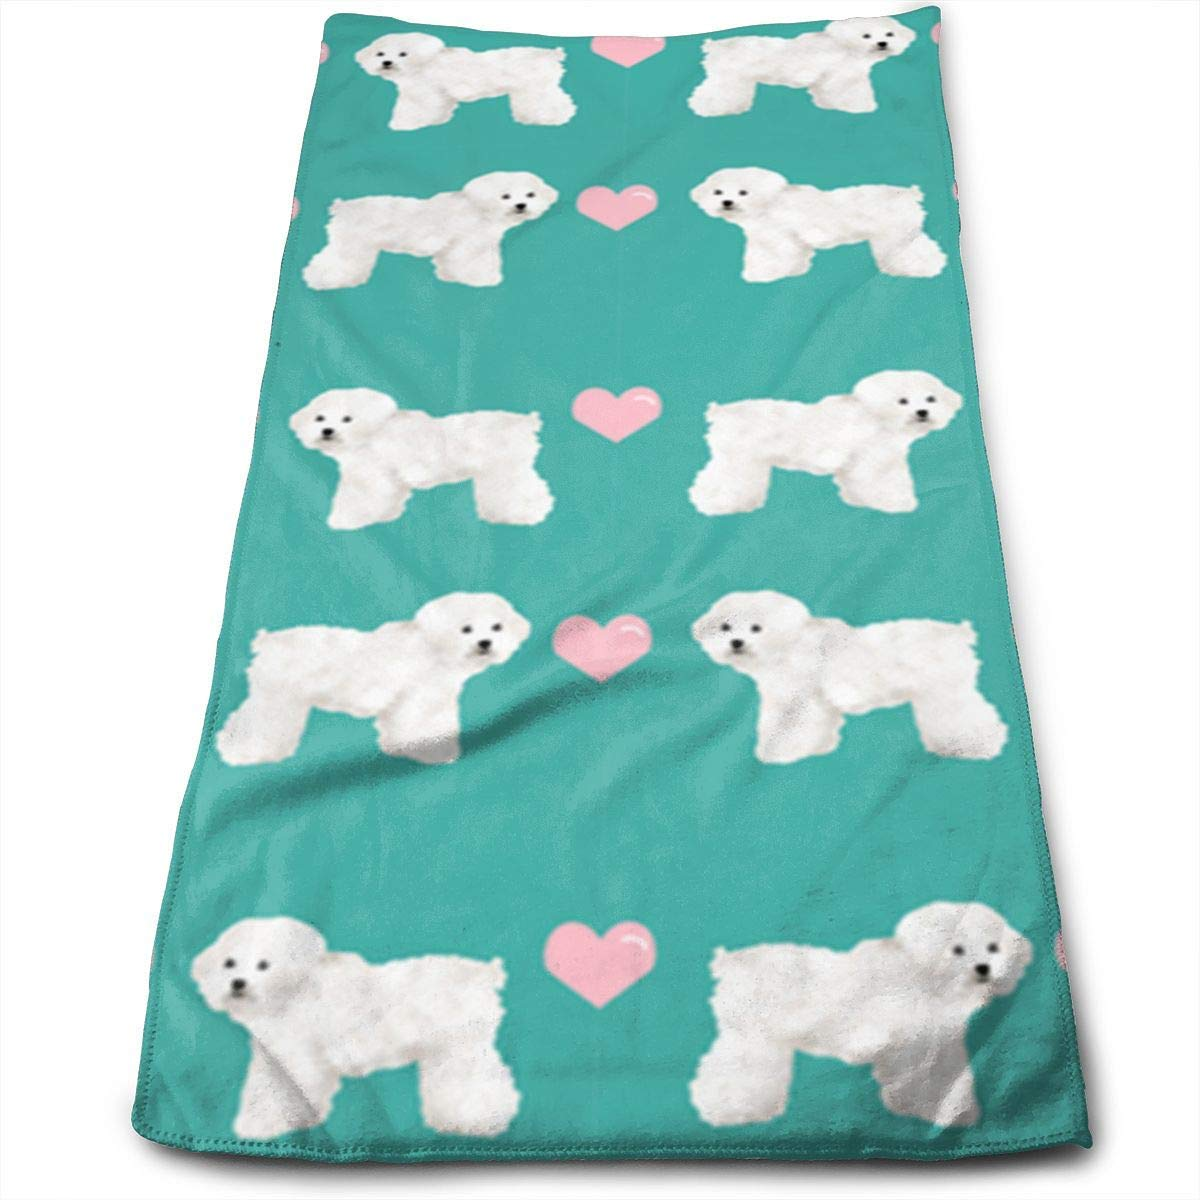 OQUYCZ Green Bichon Frise Fabric Soft Microfiber Large Hand Towel- Multipurpose Bathroom Towels for Hand, Face, Gym and SPA